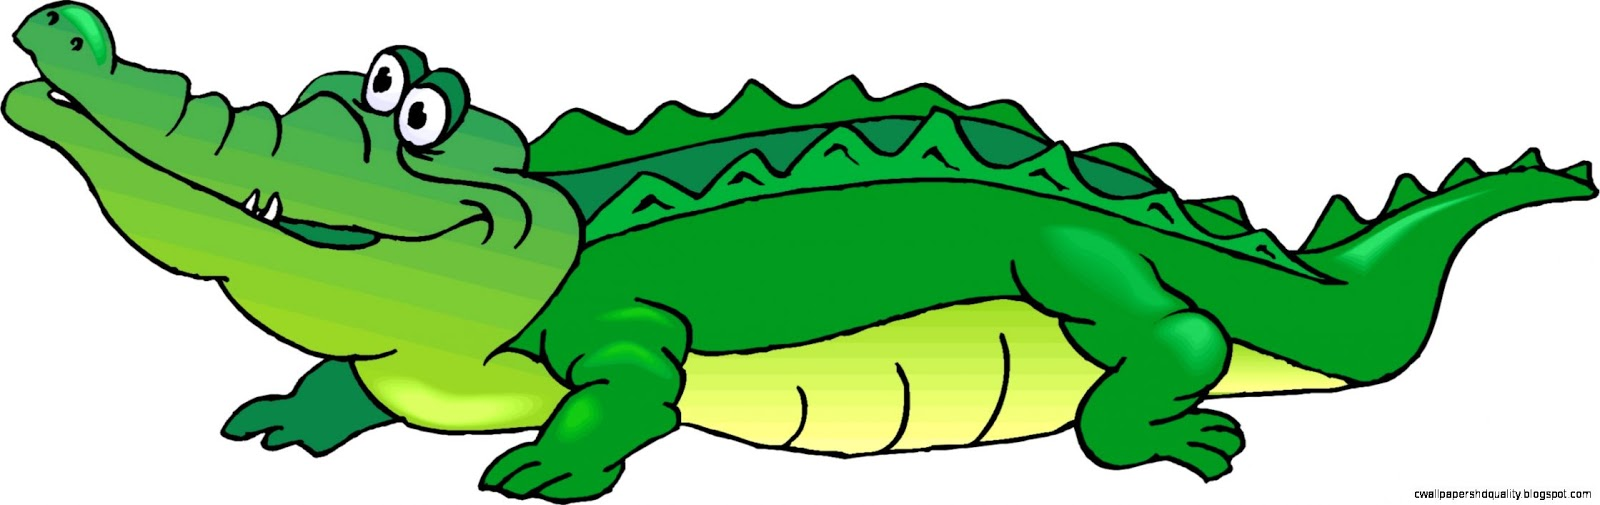 1600x505 Alligator Clipart Wallpapers Hd Quality